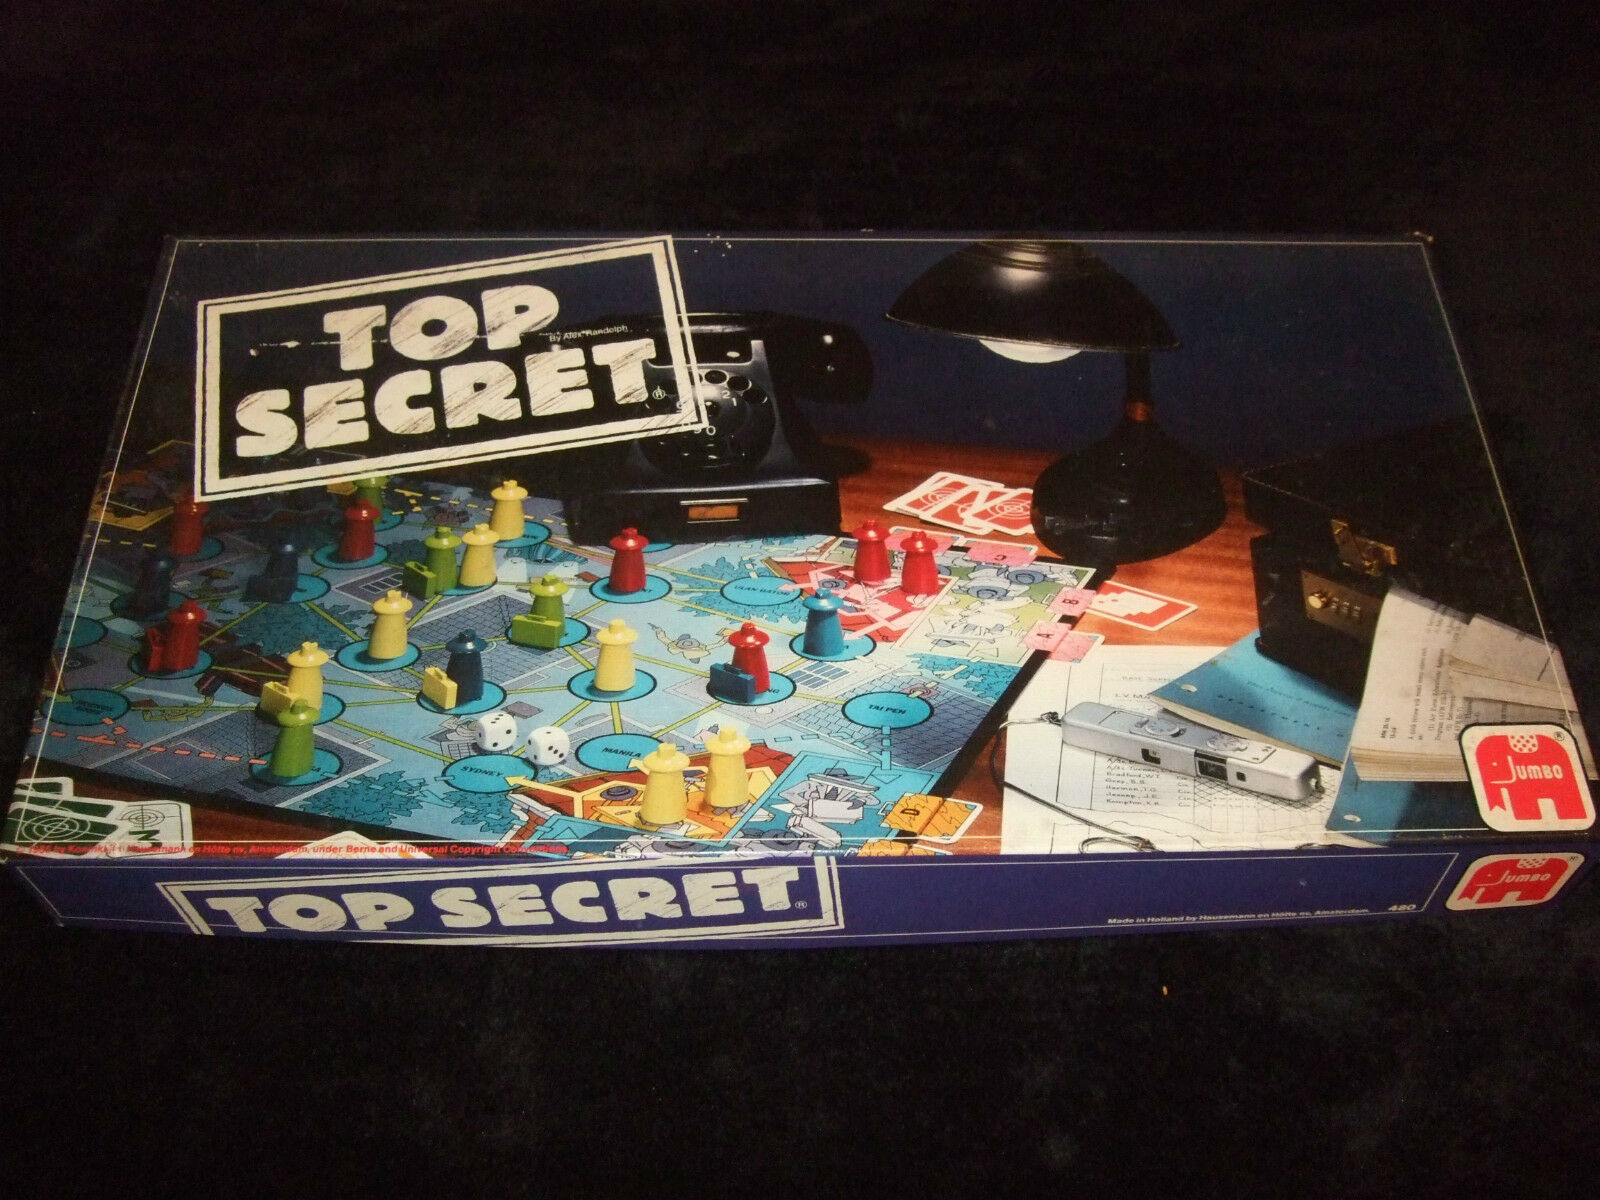 TOP SECRET - VINTAGE FAMILY BOARD GAME 1985 RARE - MADE BY JUMBO